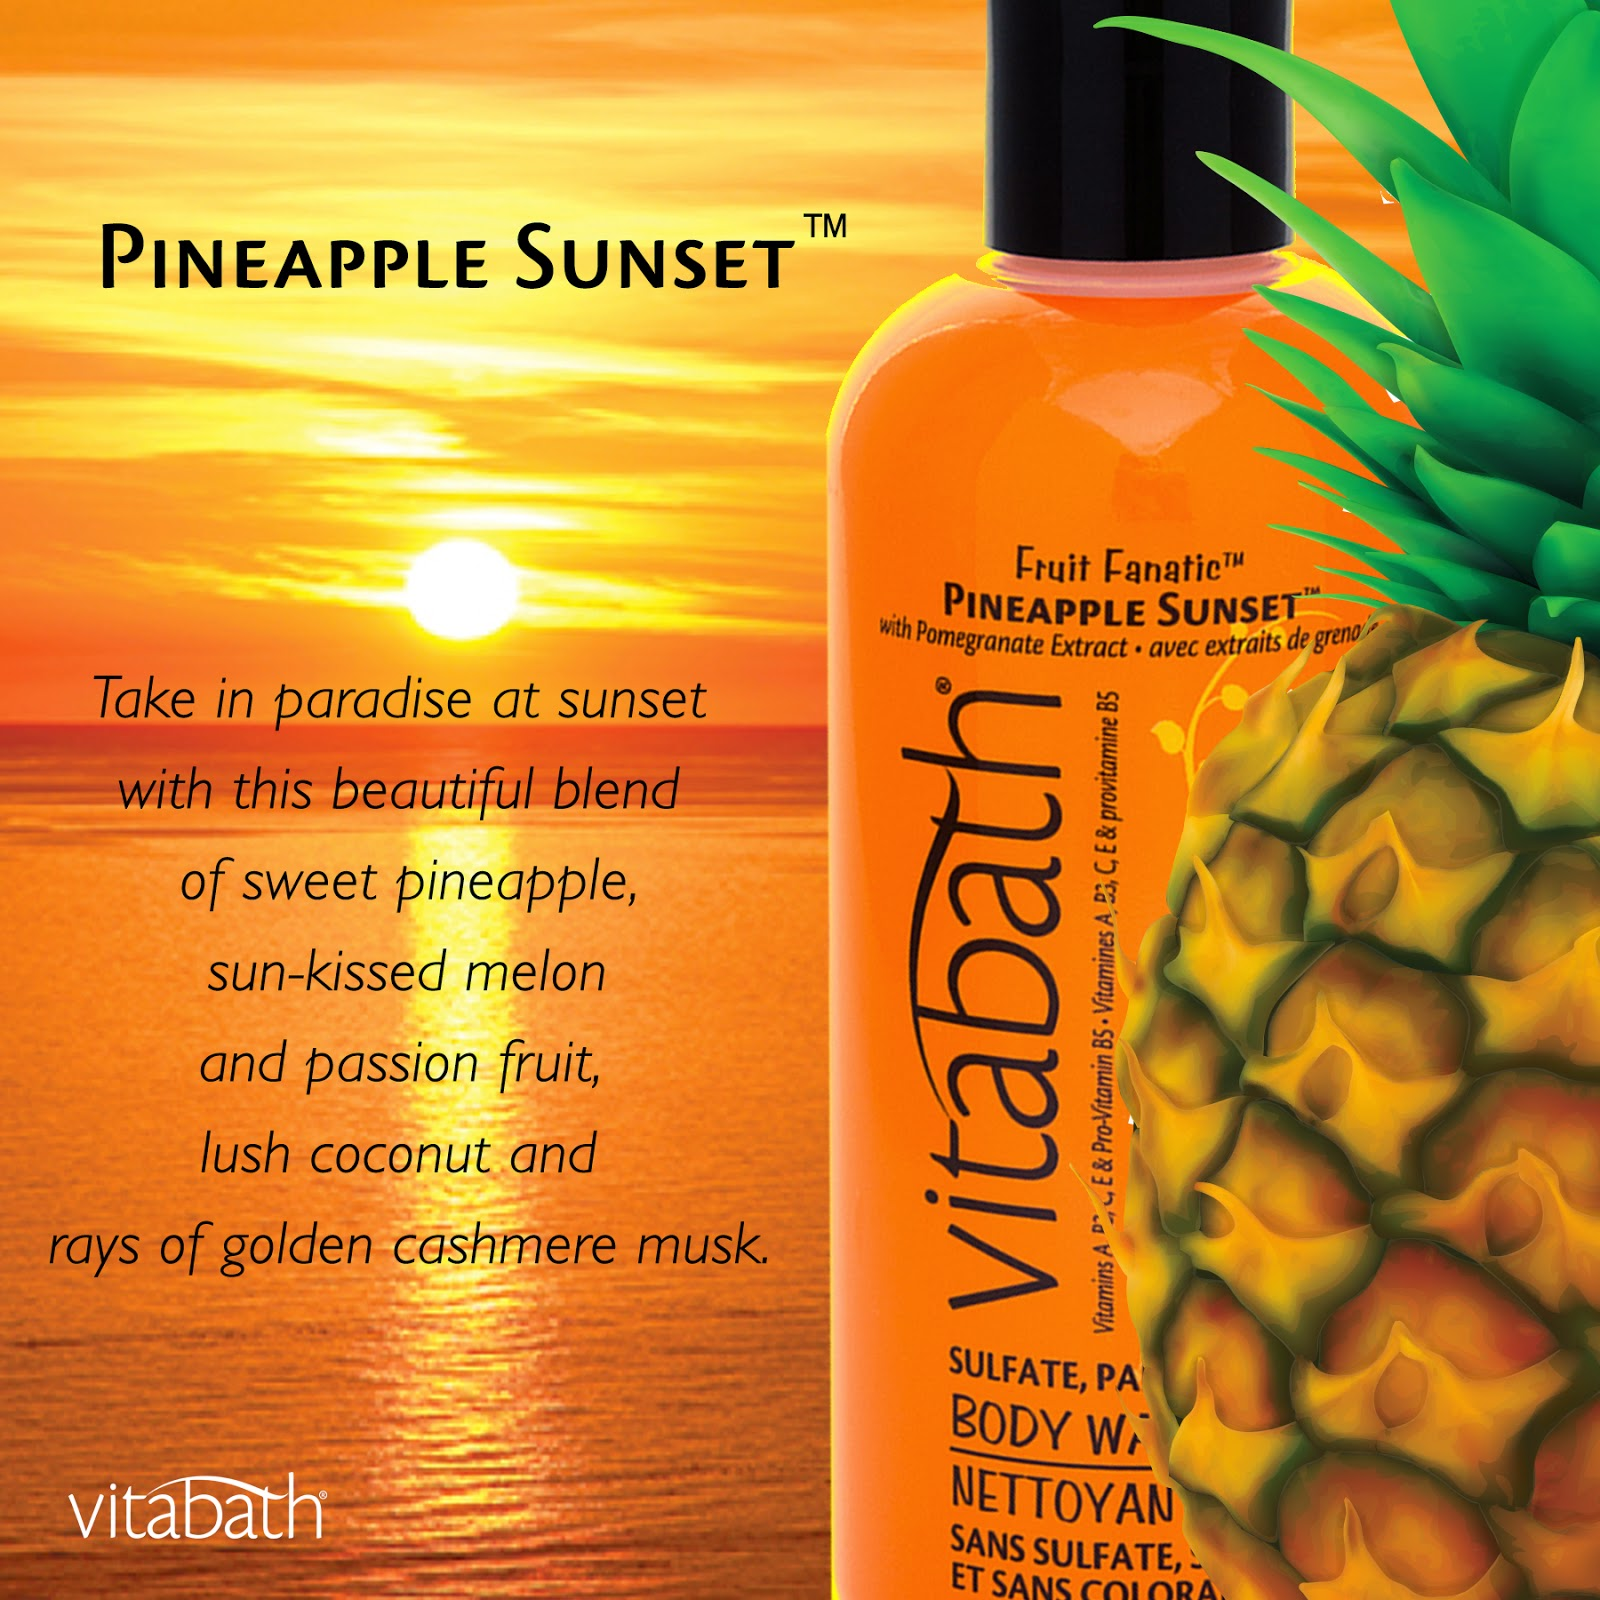 Vitabath #FruityFresh Spring Scents Pineapple Sunset Fragrance Mist